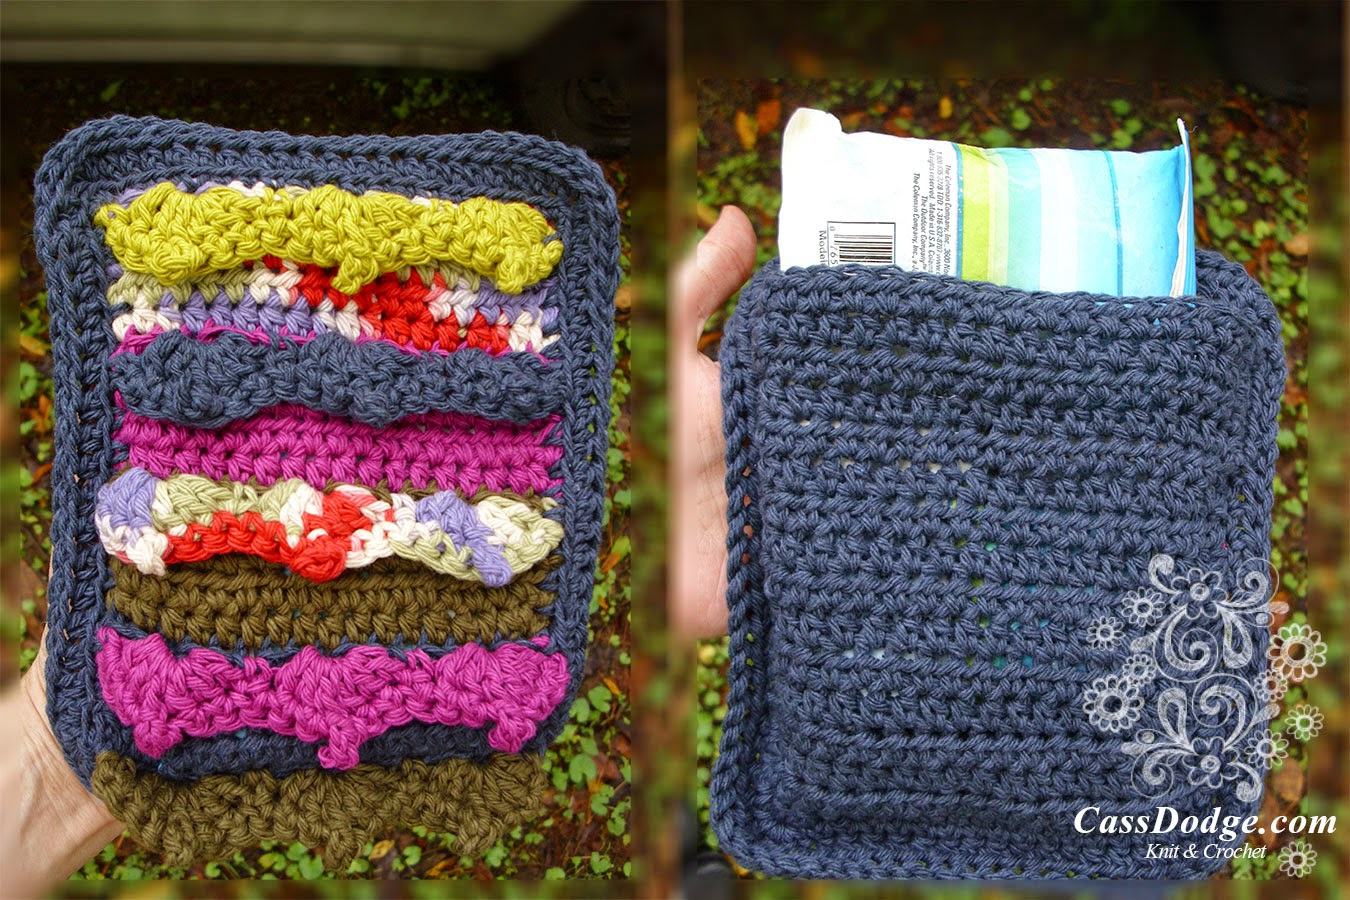 Eventide Blanket Pattern (Susan Carlson of Felted Button) Sample made by Cass Dodge of CassDodge.com as an ice pack cover